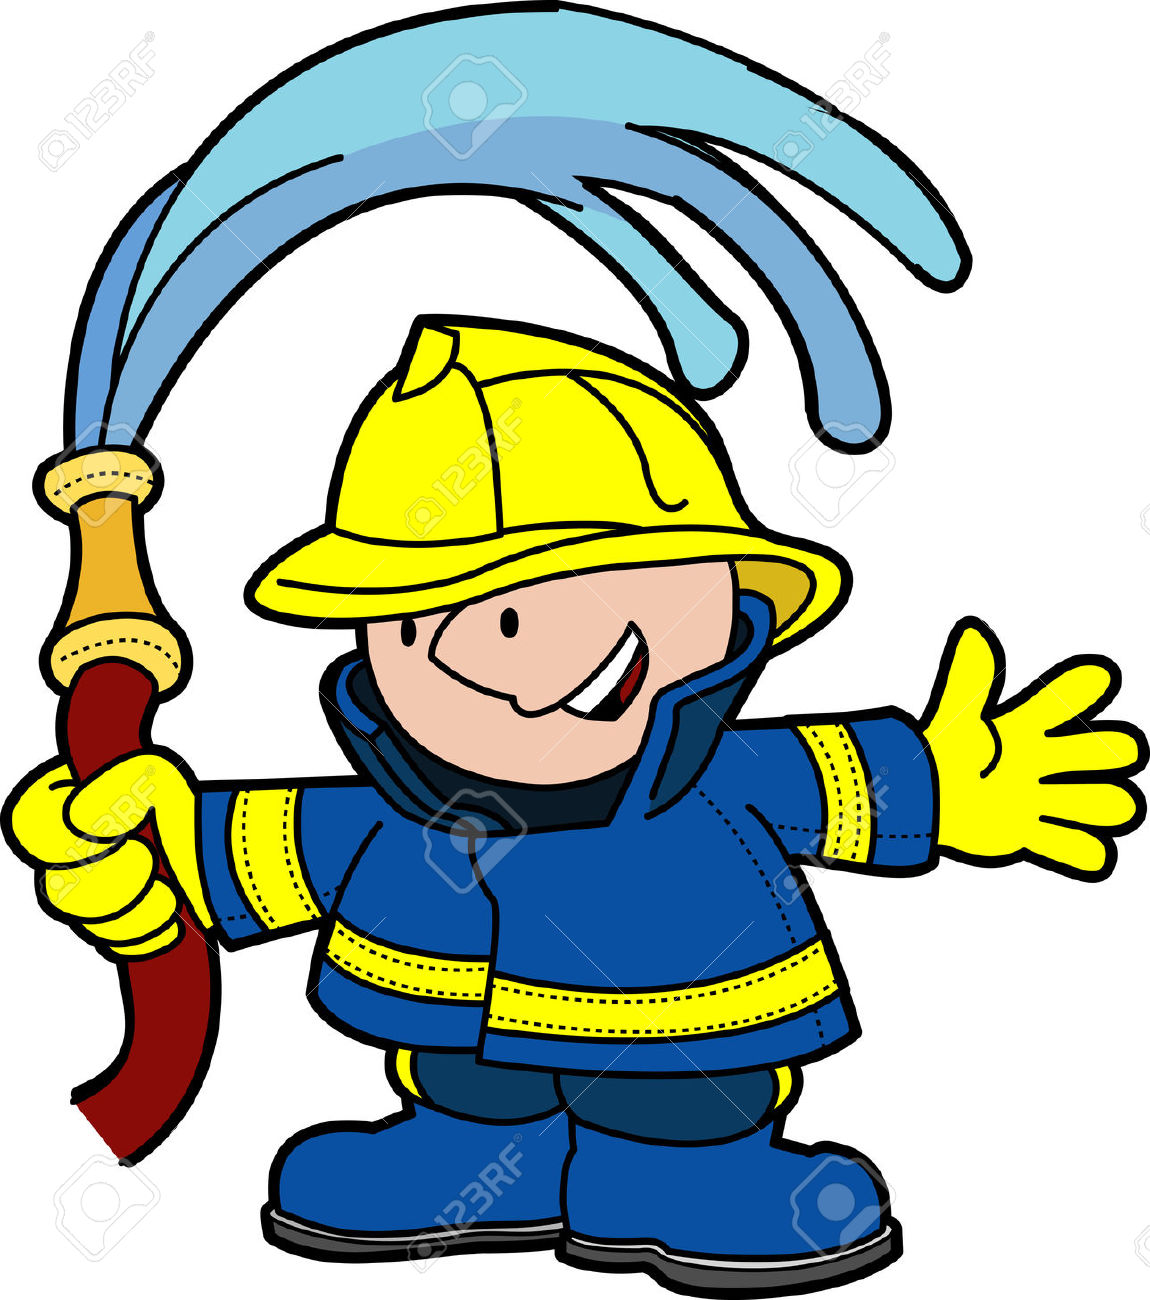 Illustration Of Fireman Holding Water Hose Royalty Free Cliparts.